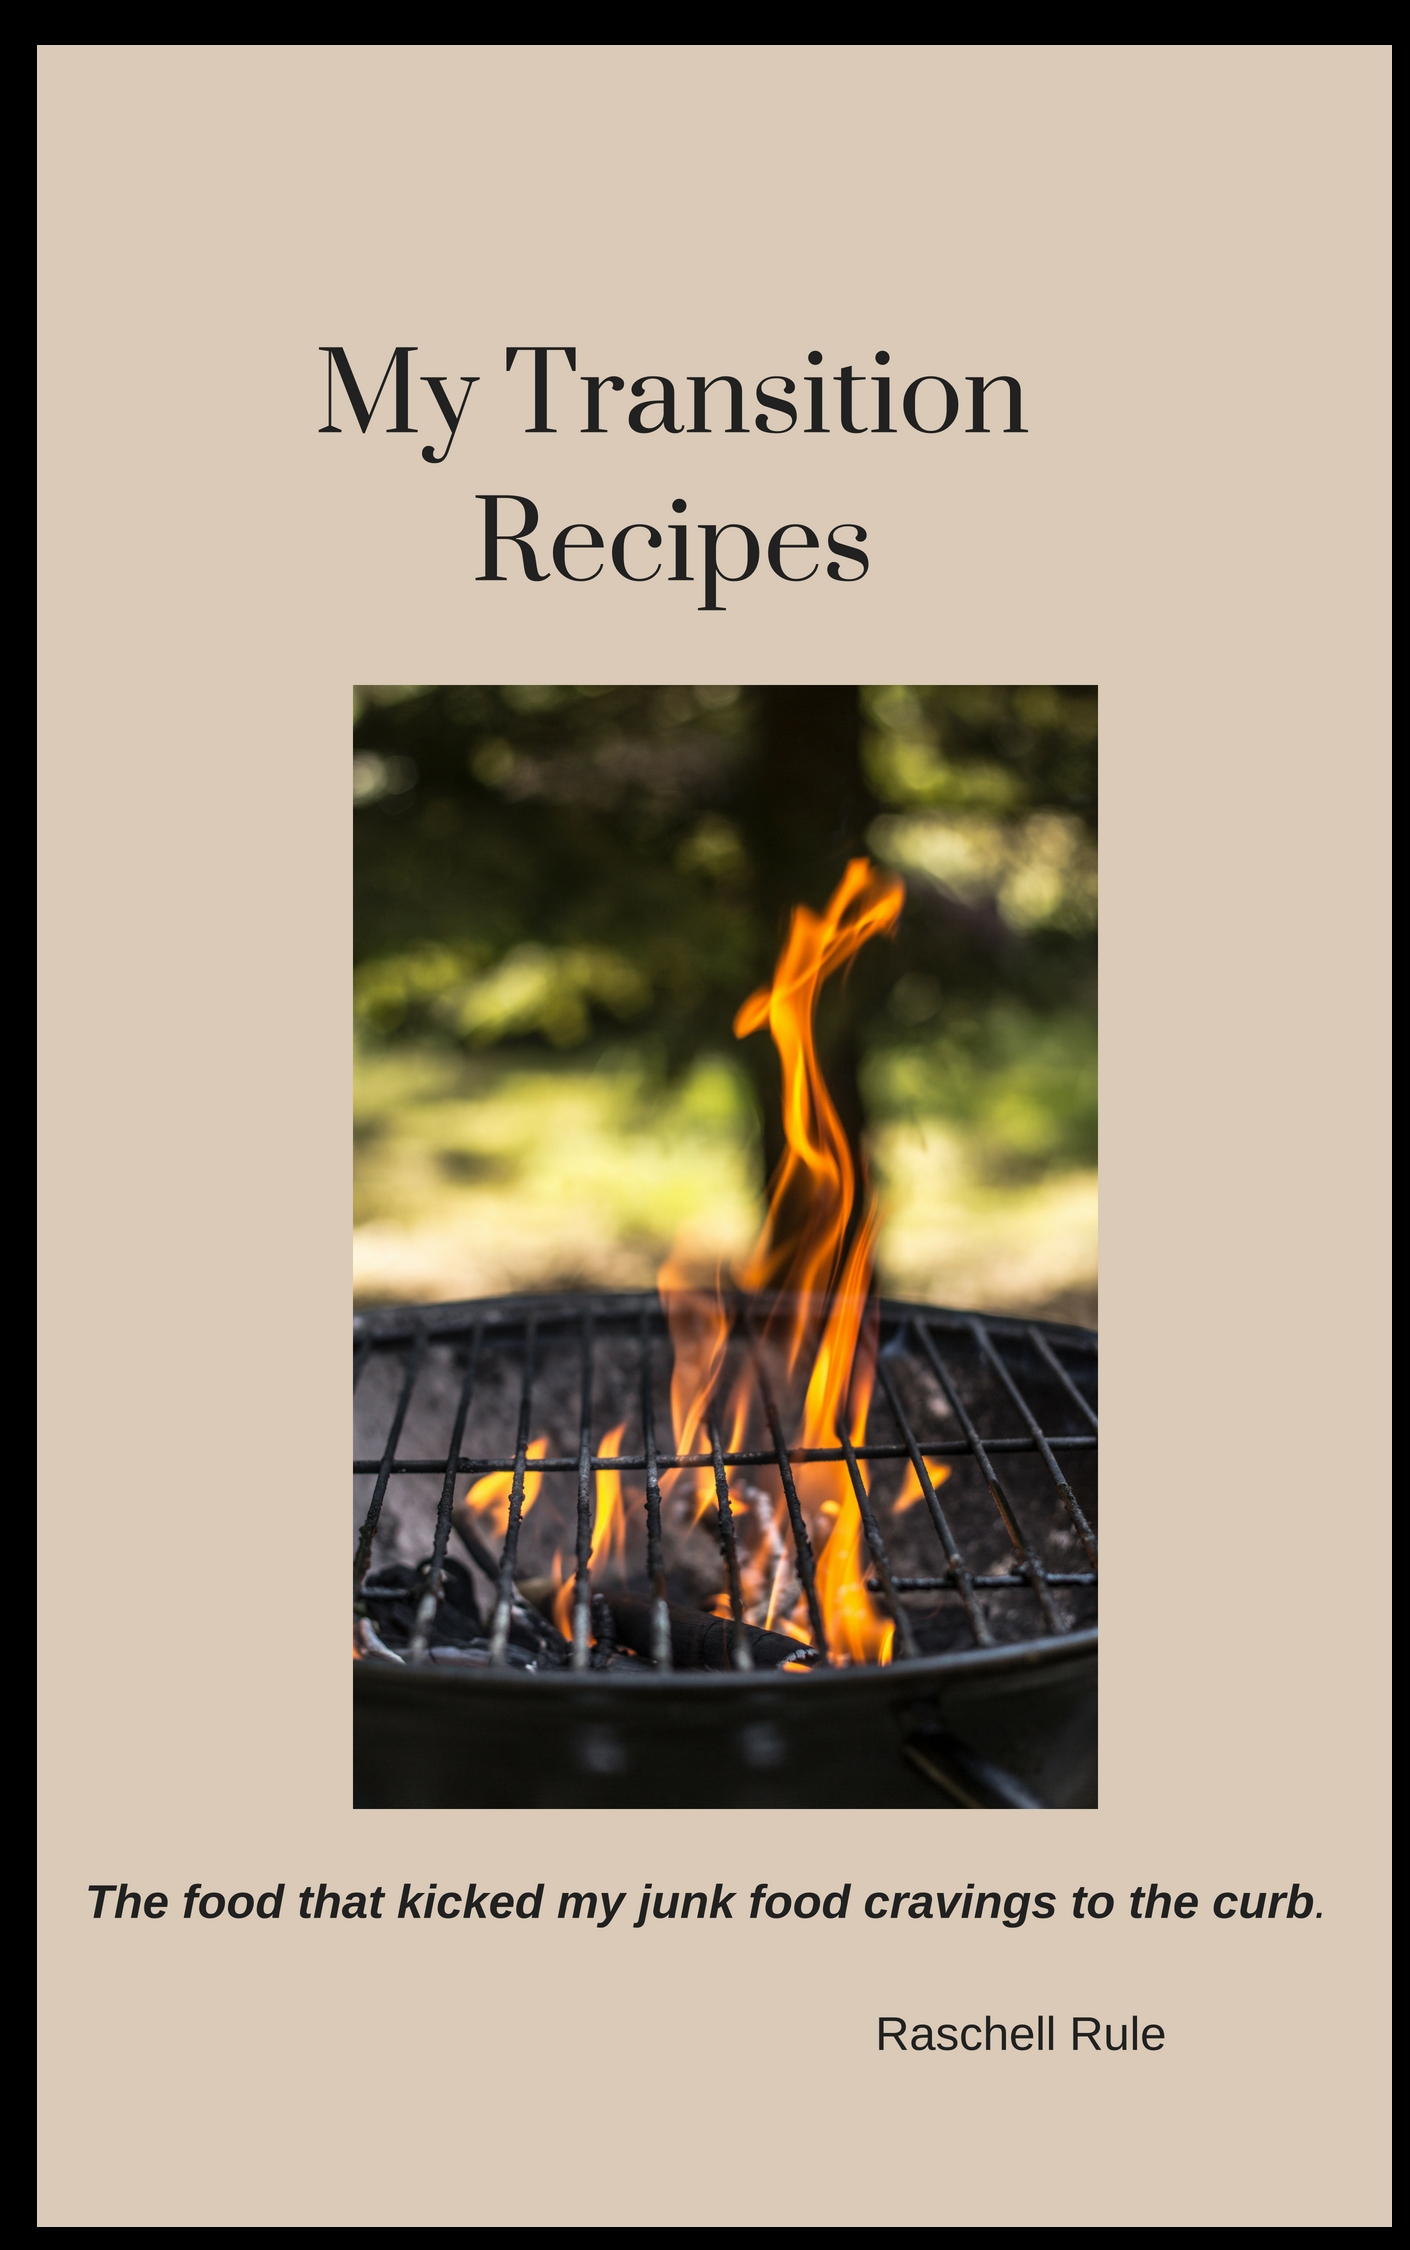 My Transition Recipes - the food that made me give up sugar, kicked my junk food cravings to the curb and lose weight. #MissHomemade #TransitionRecipes